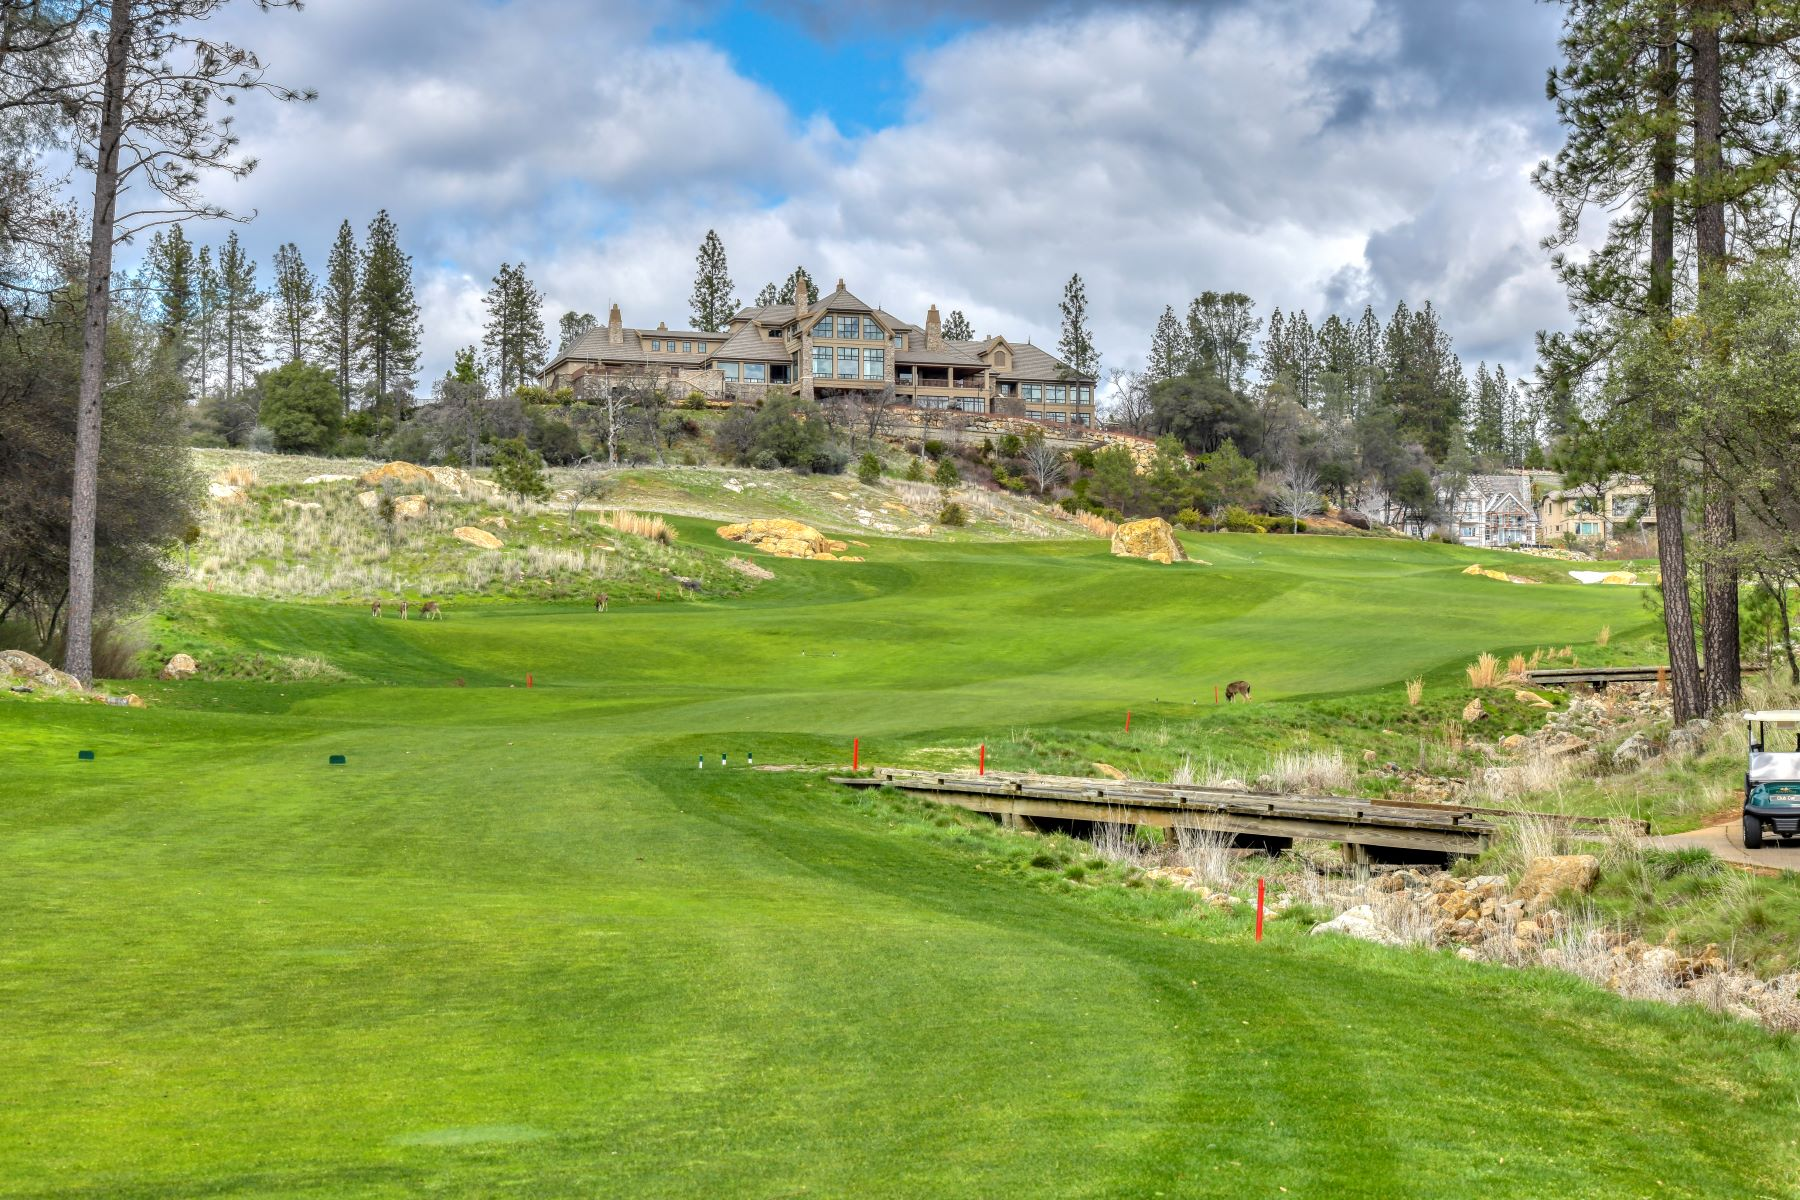 Land for Active at 15015 Grand Knoll Dr, Meadow Vista, CA 95722 15015 Grand Knoll Dr Meadow Vista, California 95272 United States